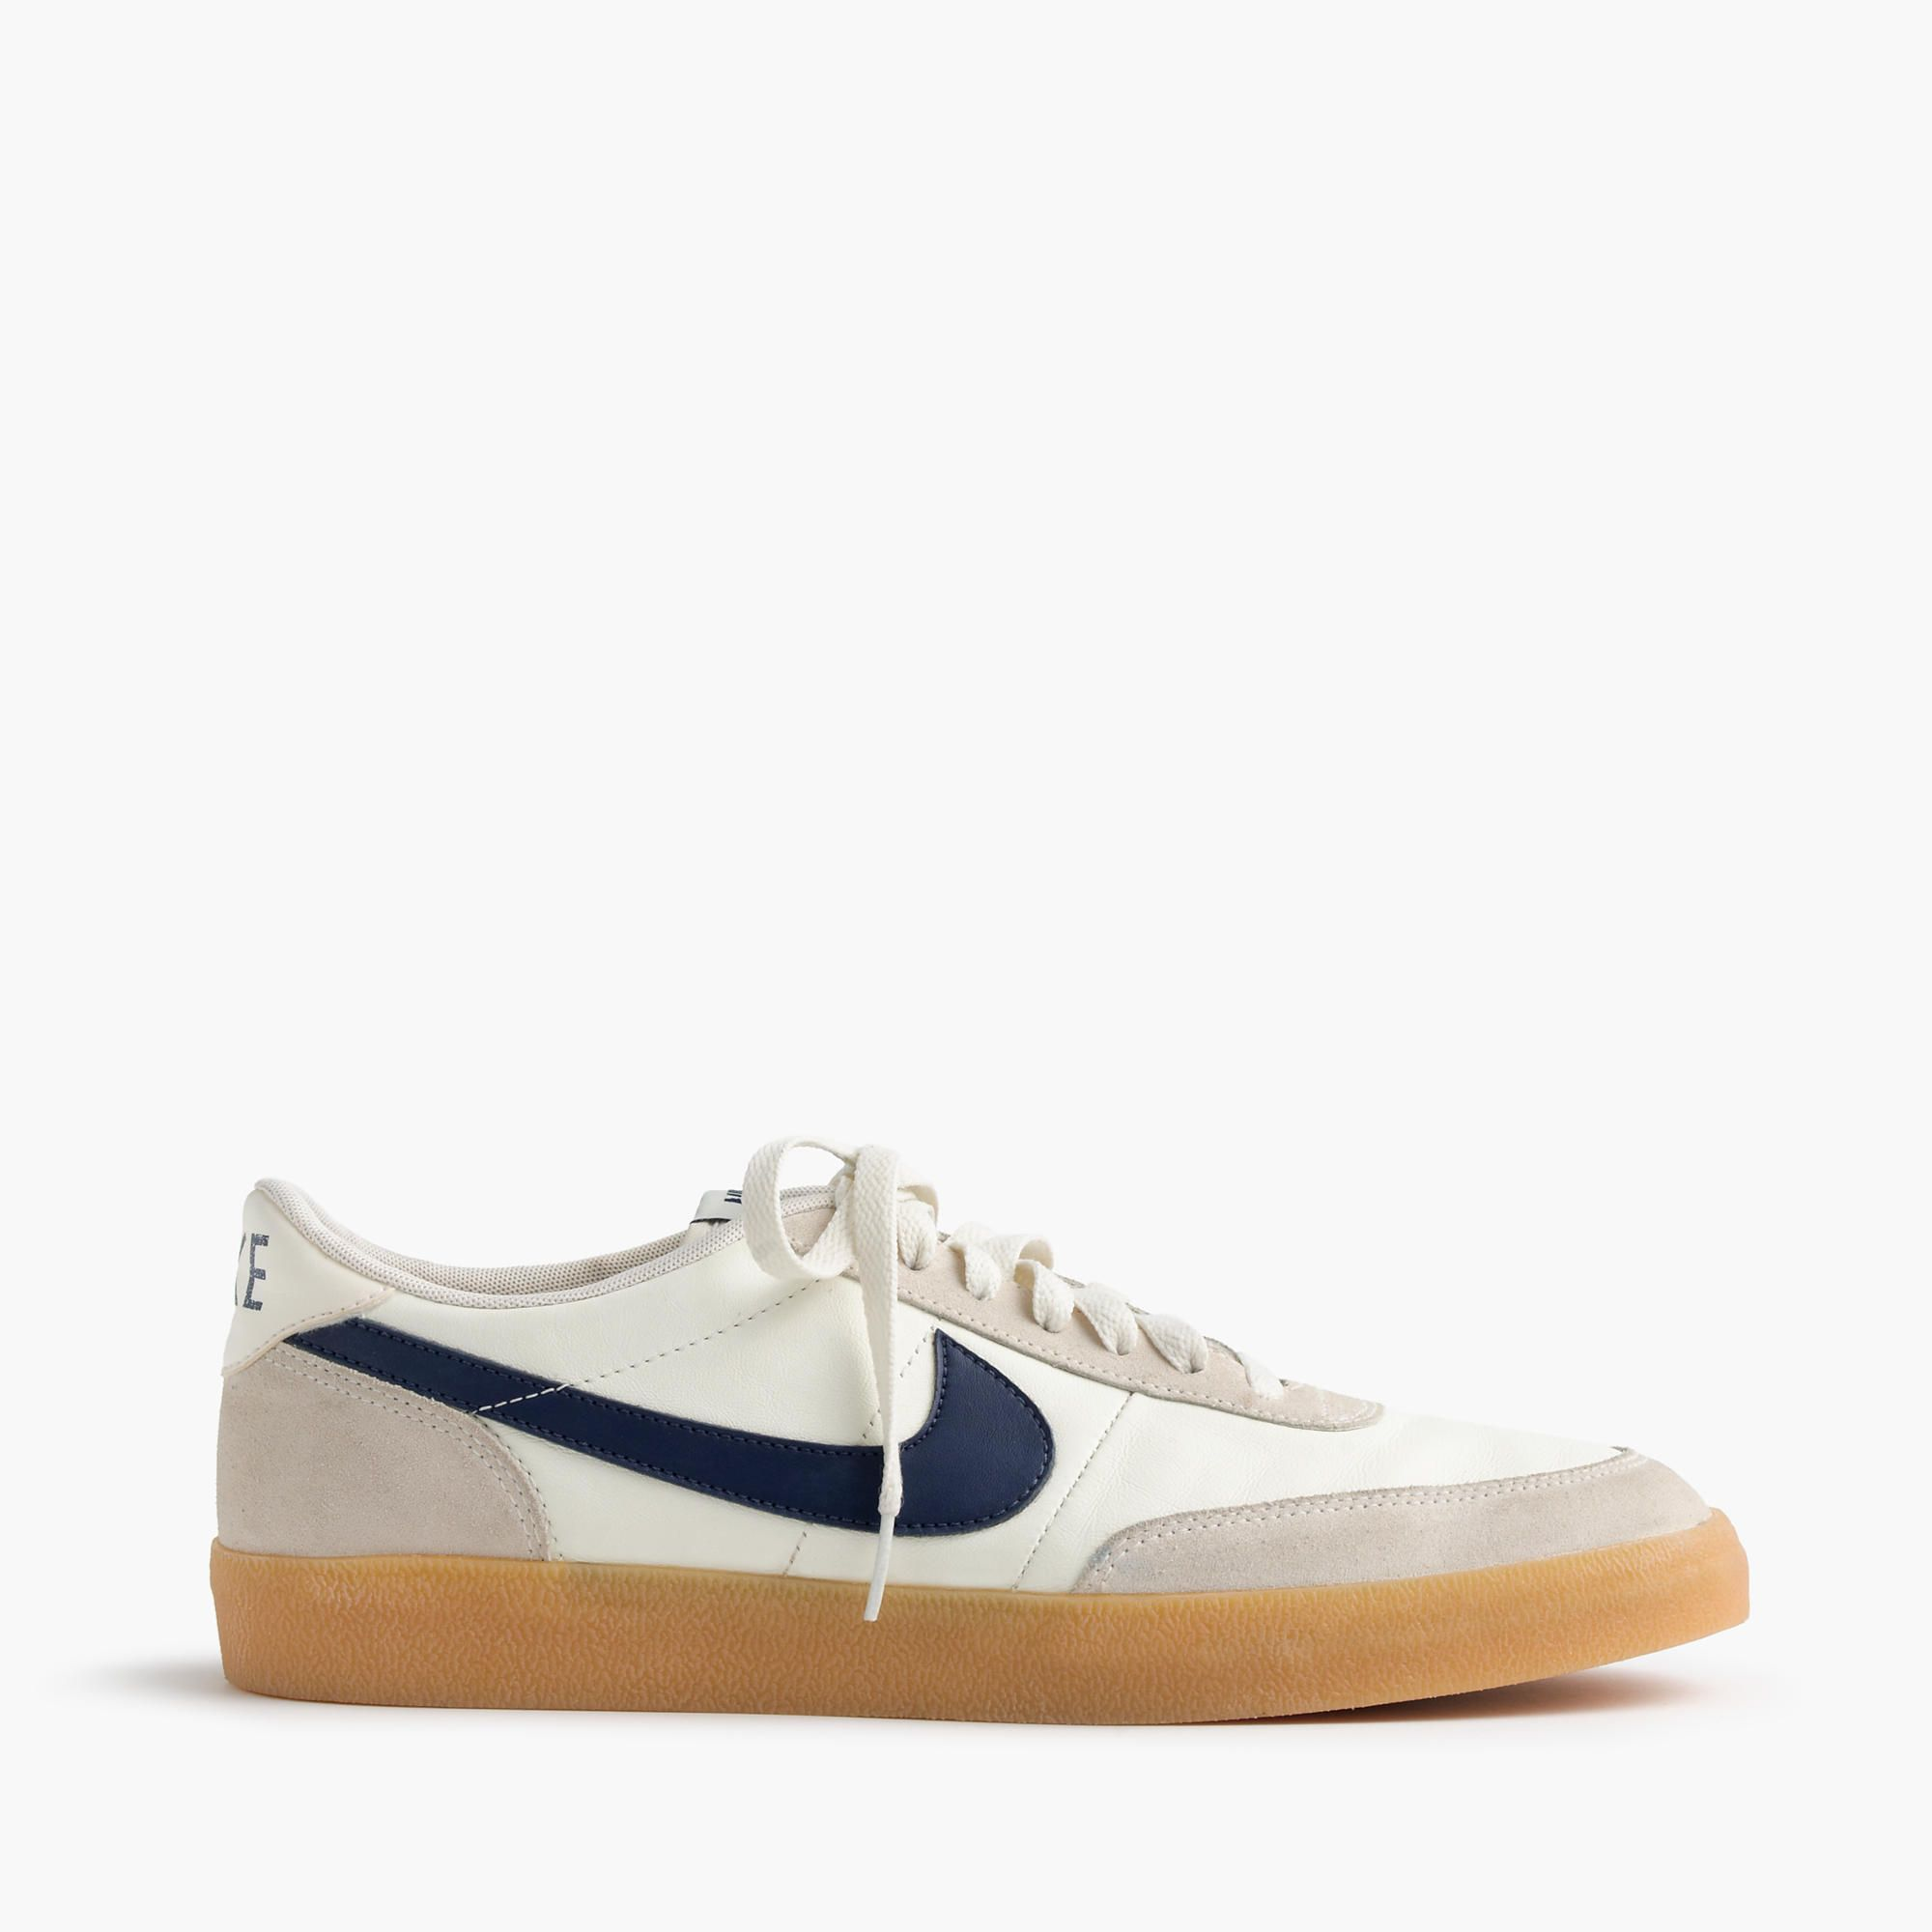 online retailer 8b3cd 4e1d0 Shop the Nike For J.Crew Killshot 2 Sneakers at JCrew.com and see our  entire selection of Mens Sneakers.